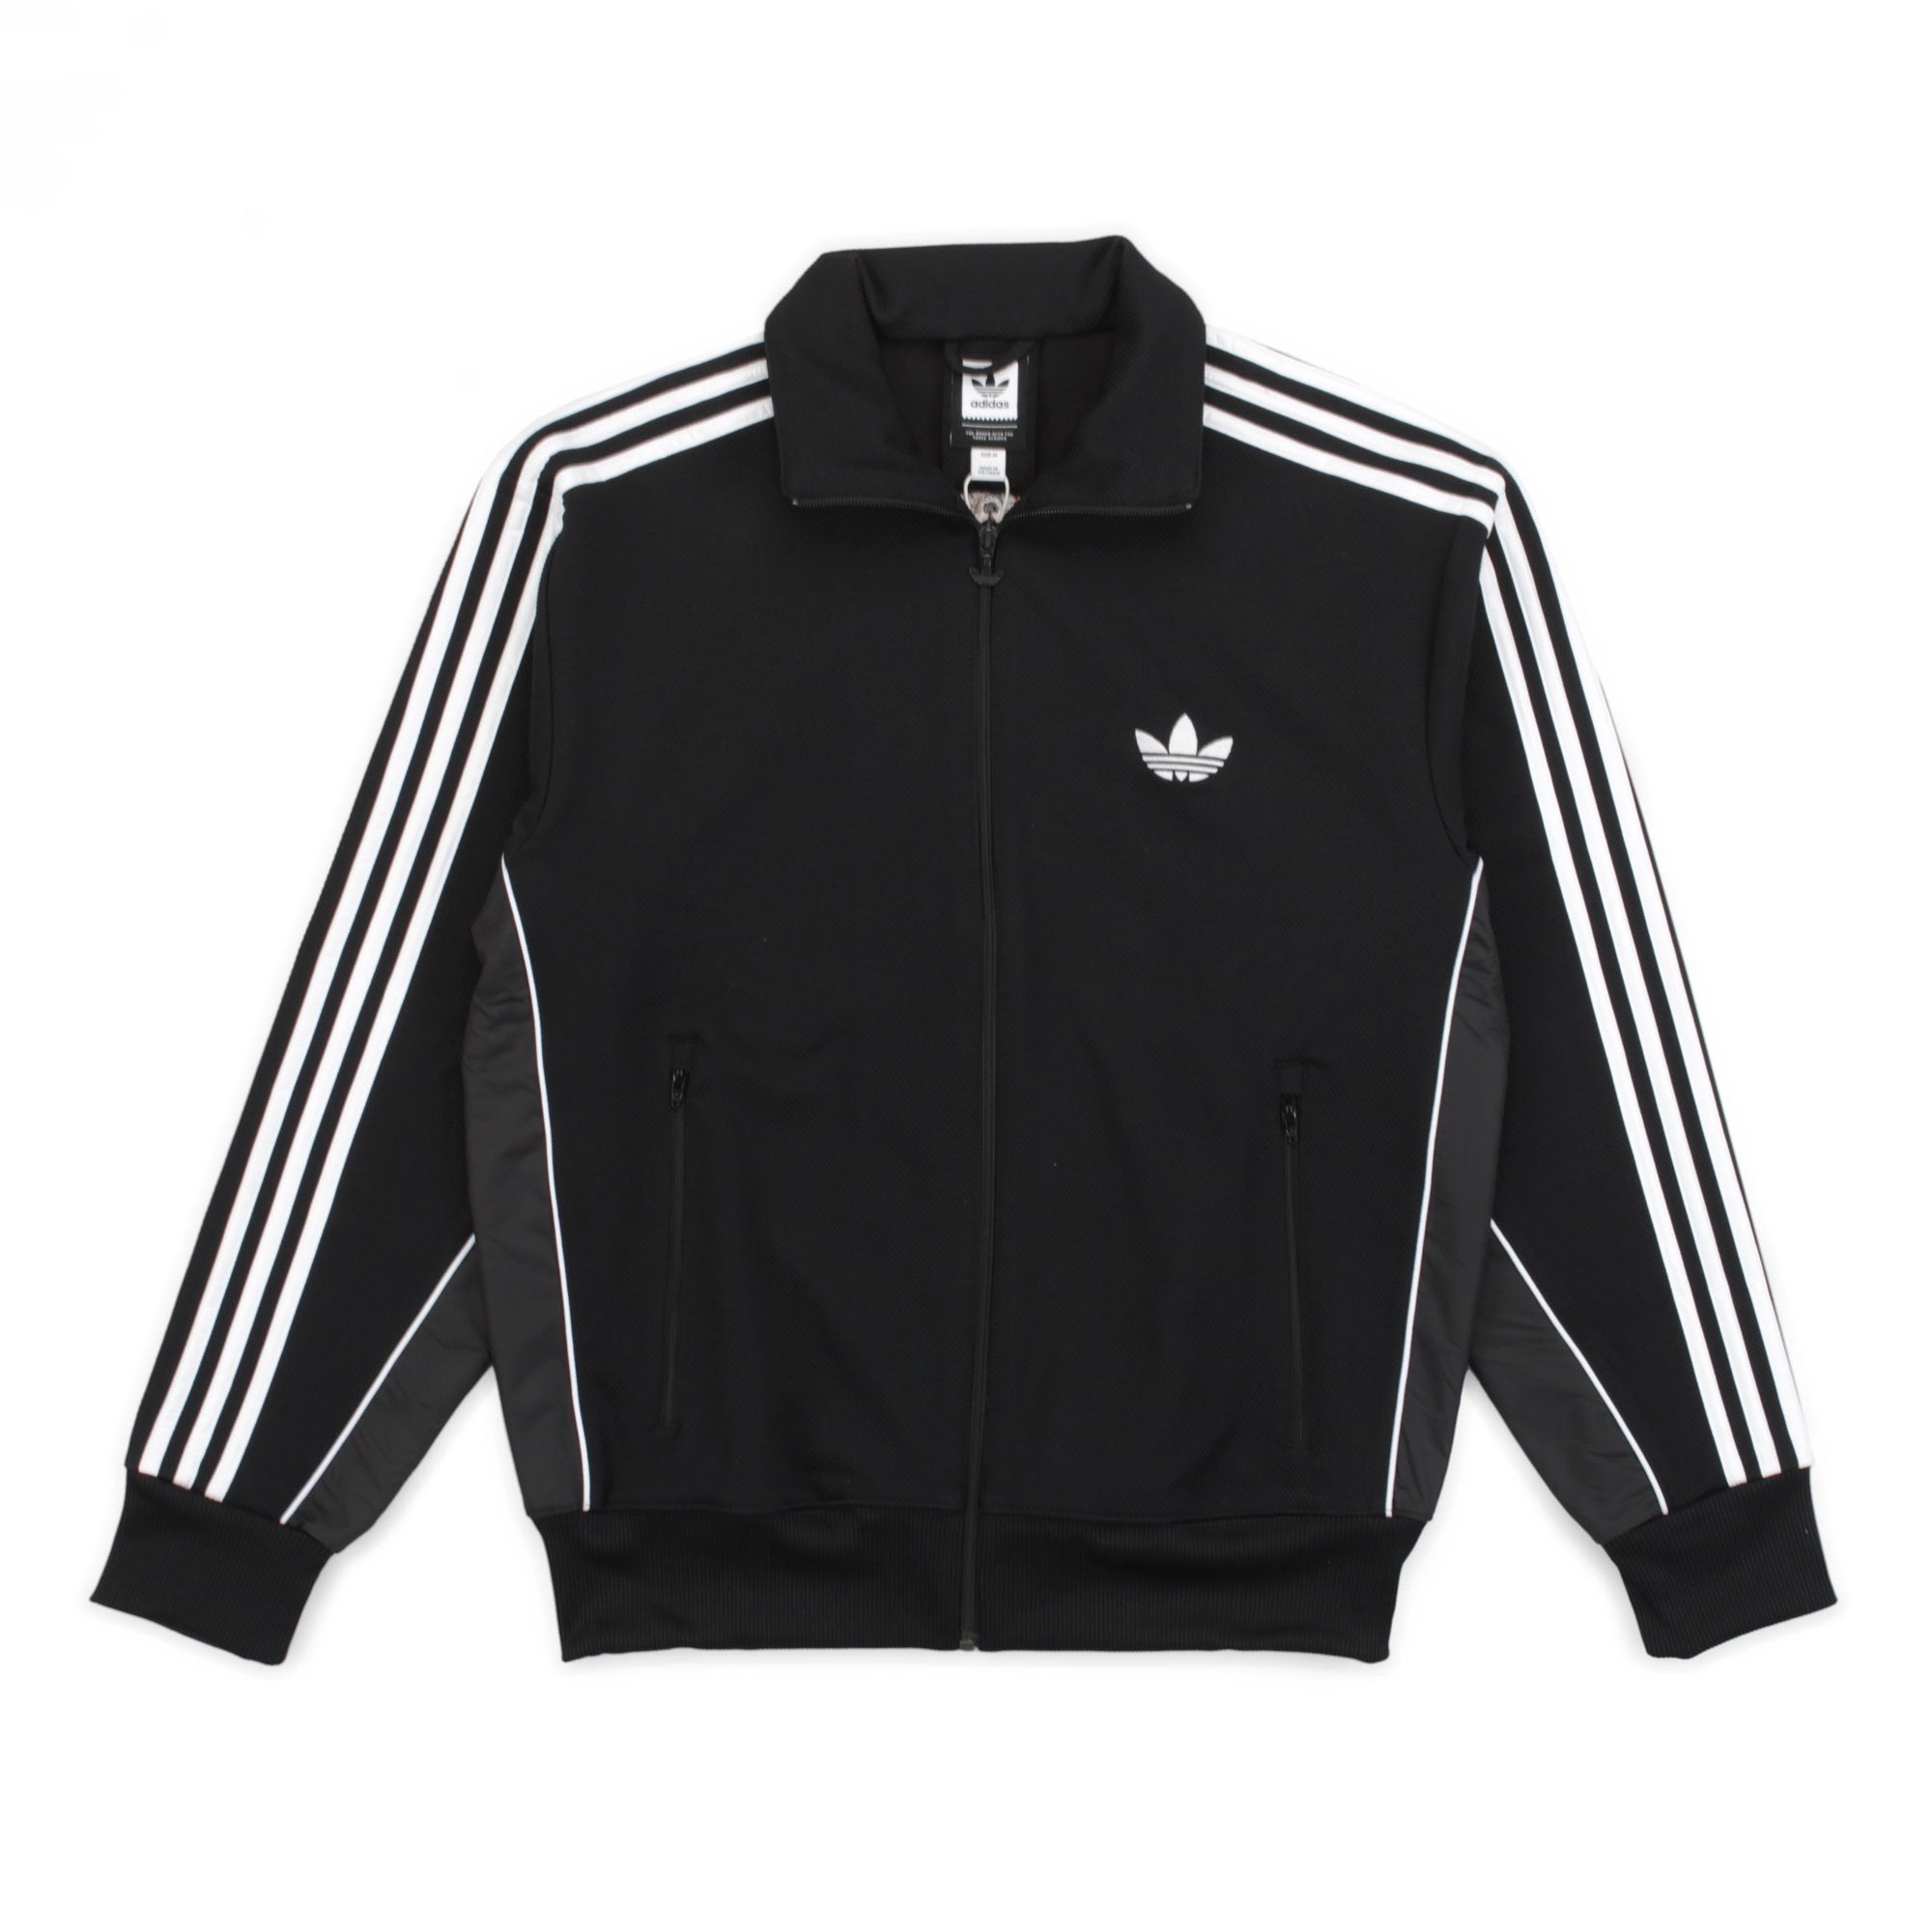 Adidas Tj Firebird Jacket Product Photo #1